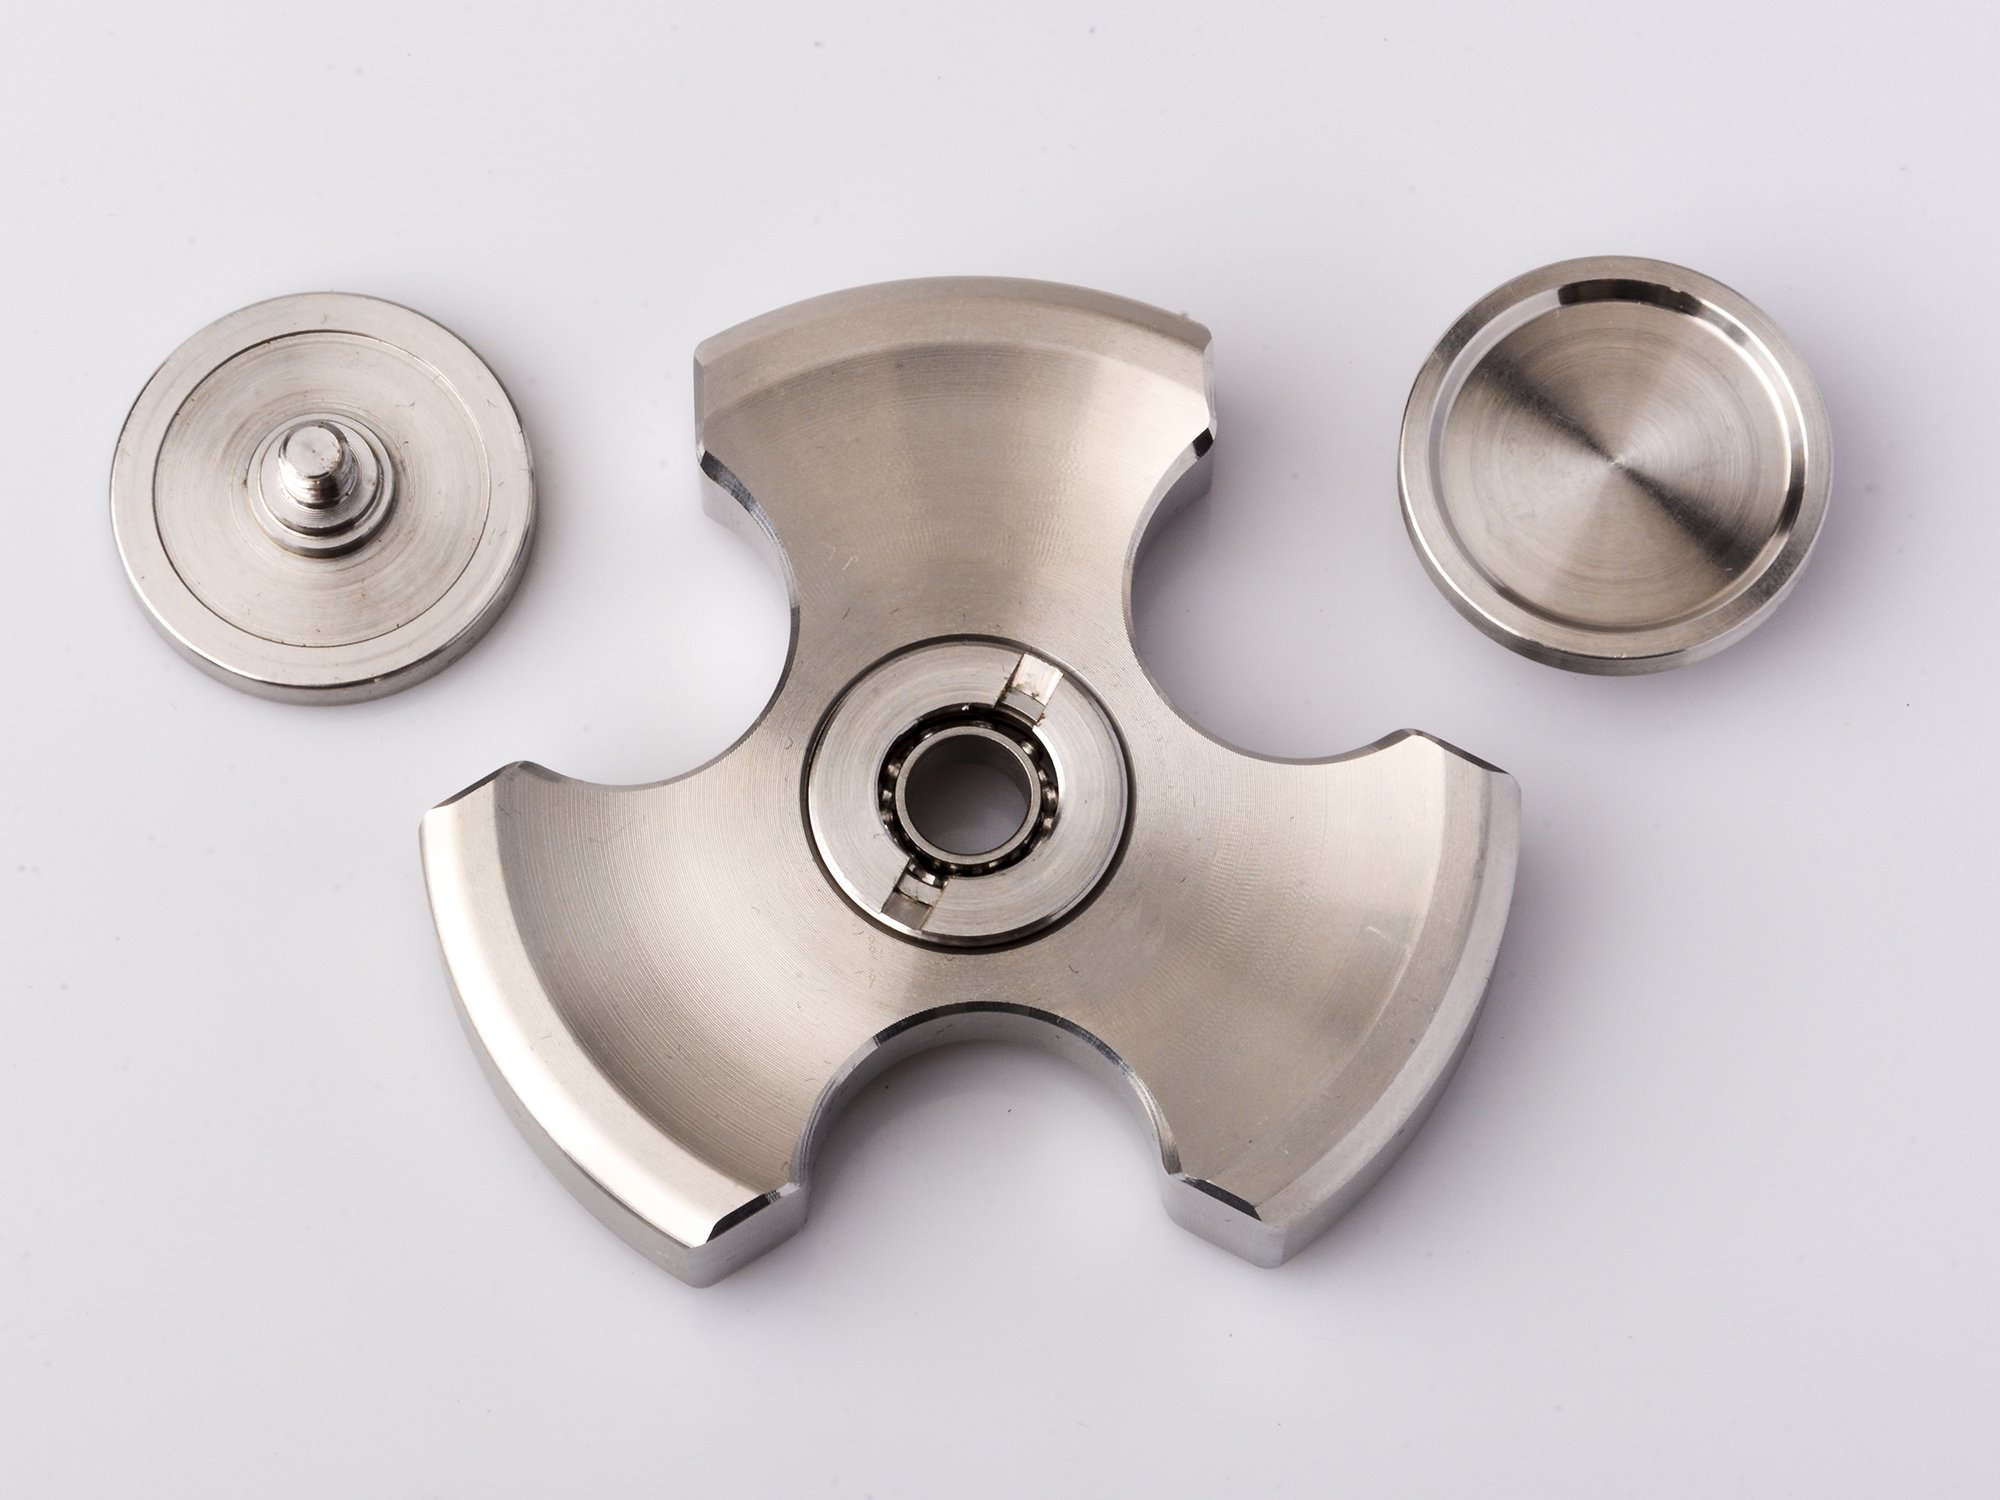 ILoveFidget Fidget Spinner, Best Stainless Steel Hand Spinner EDC Toy, R188 bearing spins up to 8 mins, relieve stress ADHD ADD Austism anxiety boredom, improve focus attention (Tri Bar) by ILoveFidget (Image #4)